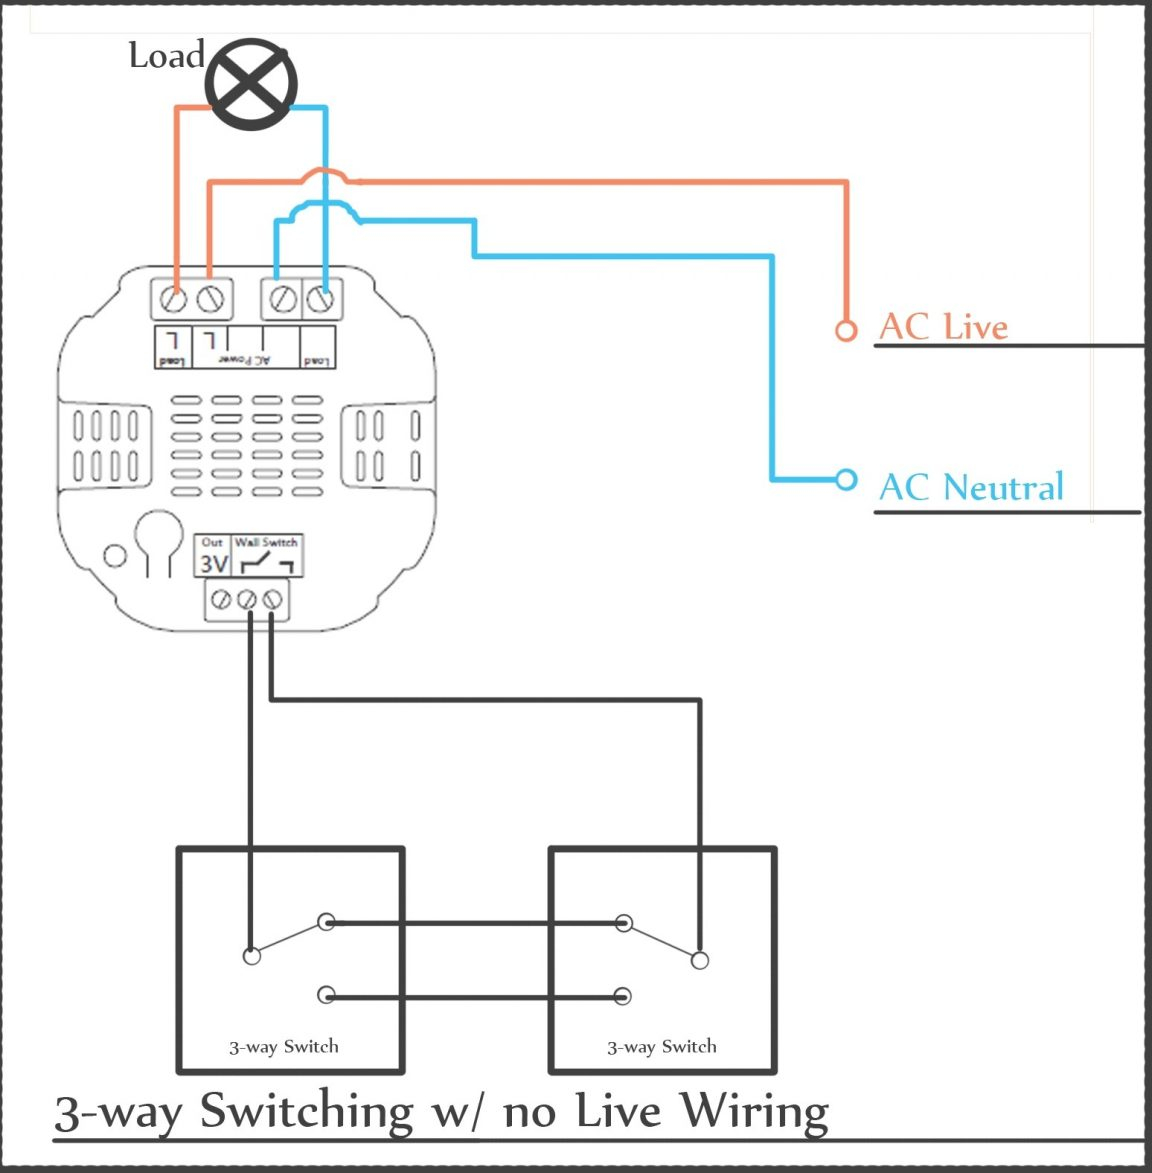 3 way switch wiring diagram pdf Download-3 Way Switch Wiring Diagram Pdf Luxury Way Switch Wiring Diagram Light Trailer Prong Plug Rv 10-a